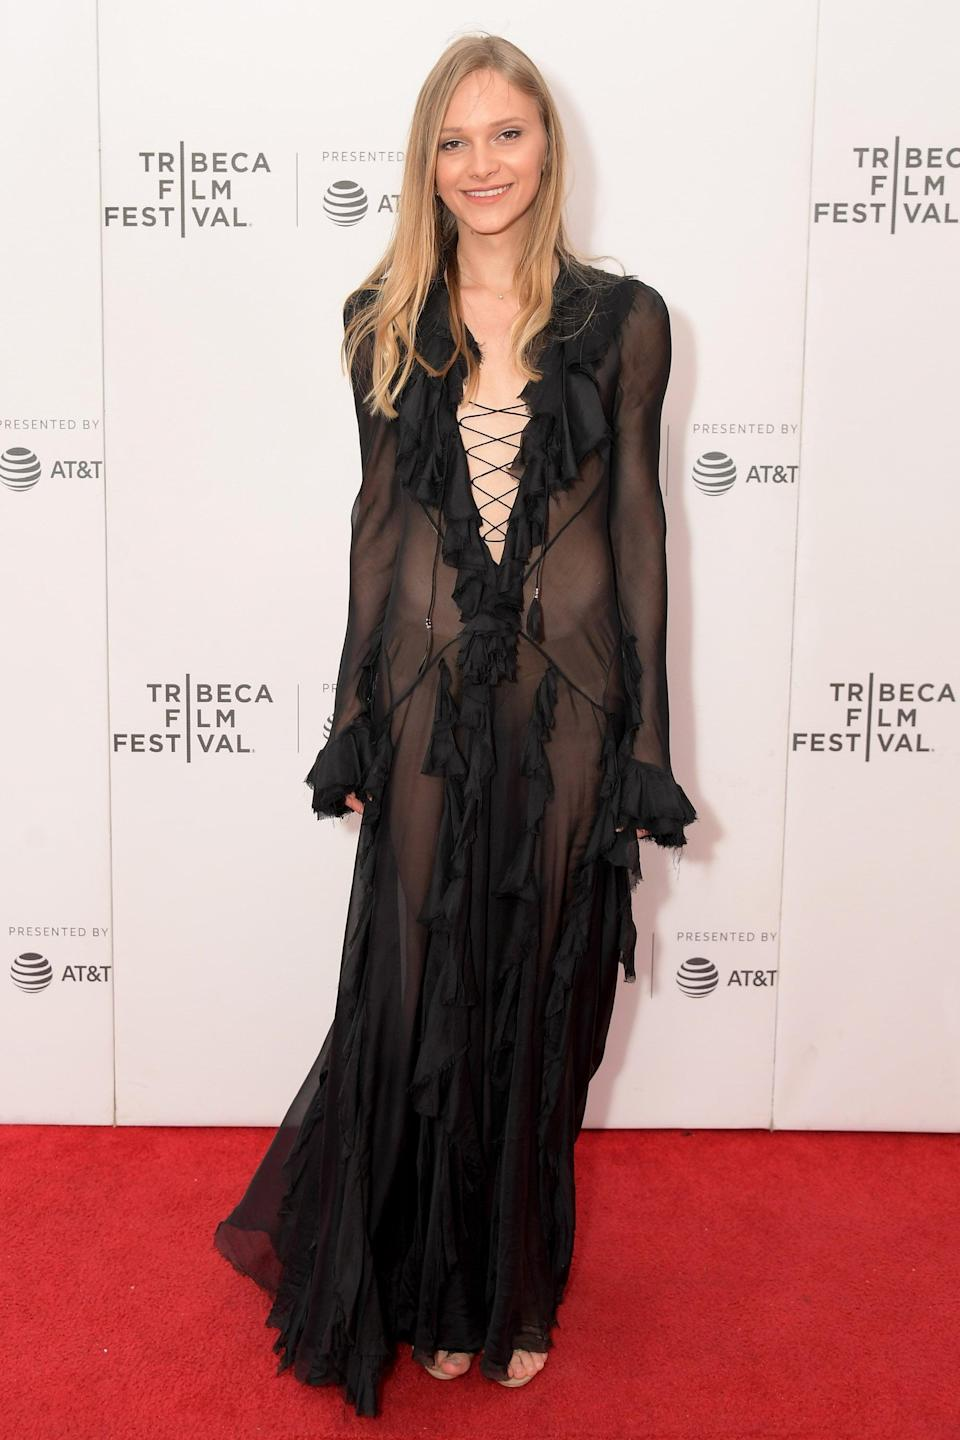 <p>The Israeli actress and model is Ukrainian-born and has walked runways such as Marc Jacobs, Diesel, and Alon Livné, also participating in campaign work and starring in films such as 2018's <b>Flawless</b>.</p>